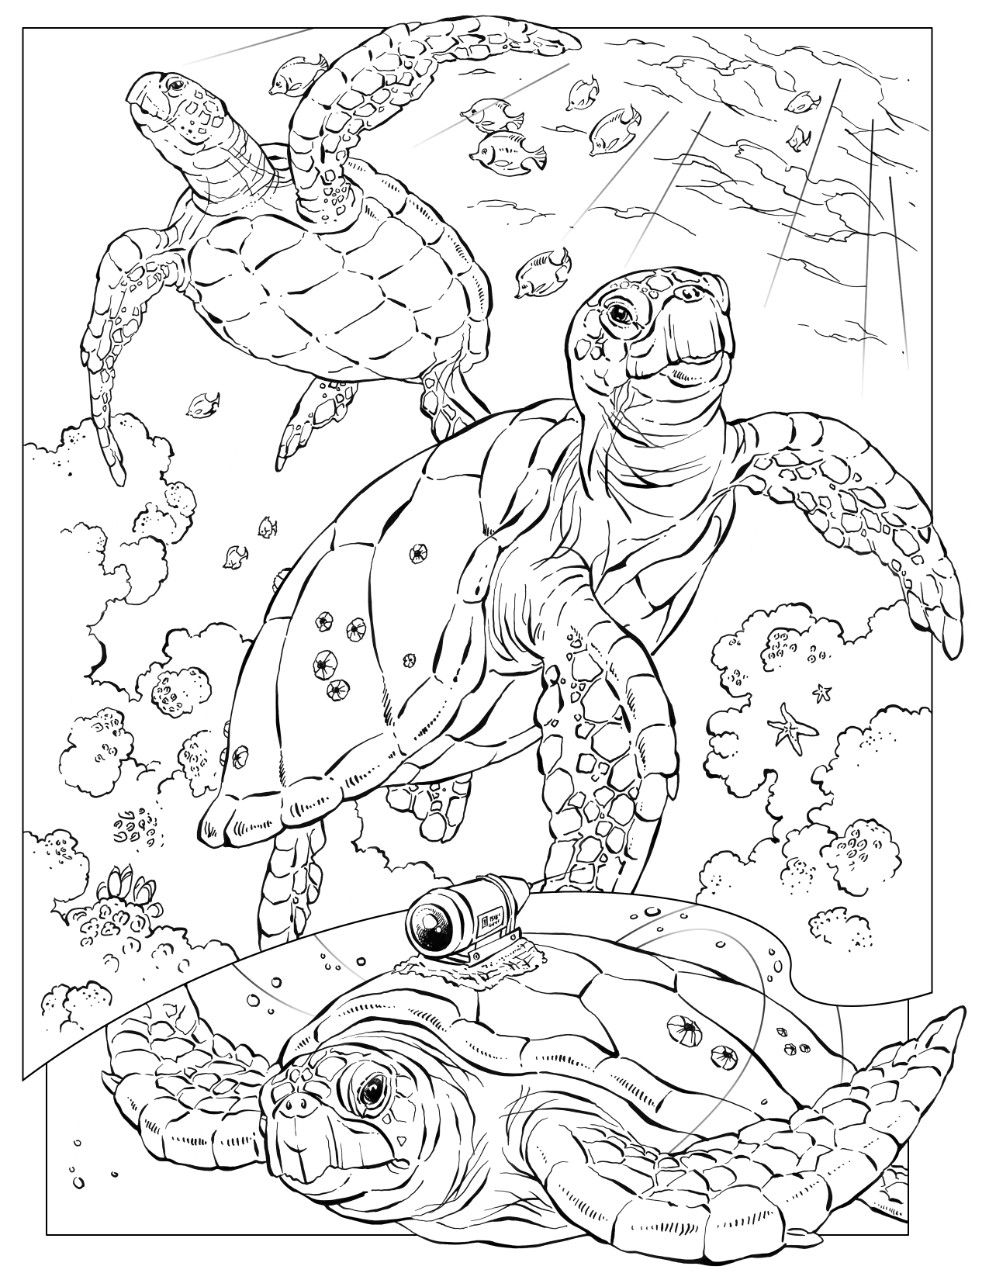 Coloring Book Animals J To Z Turtle Coloring Pages Ocean Coloring Pages Animal Coloring Pages